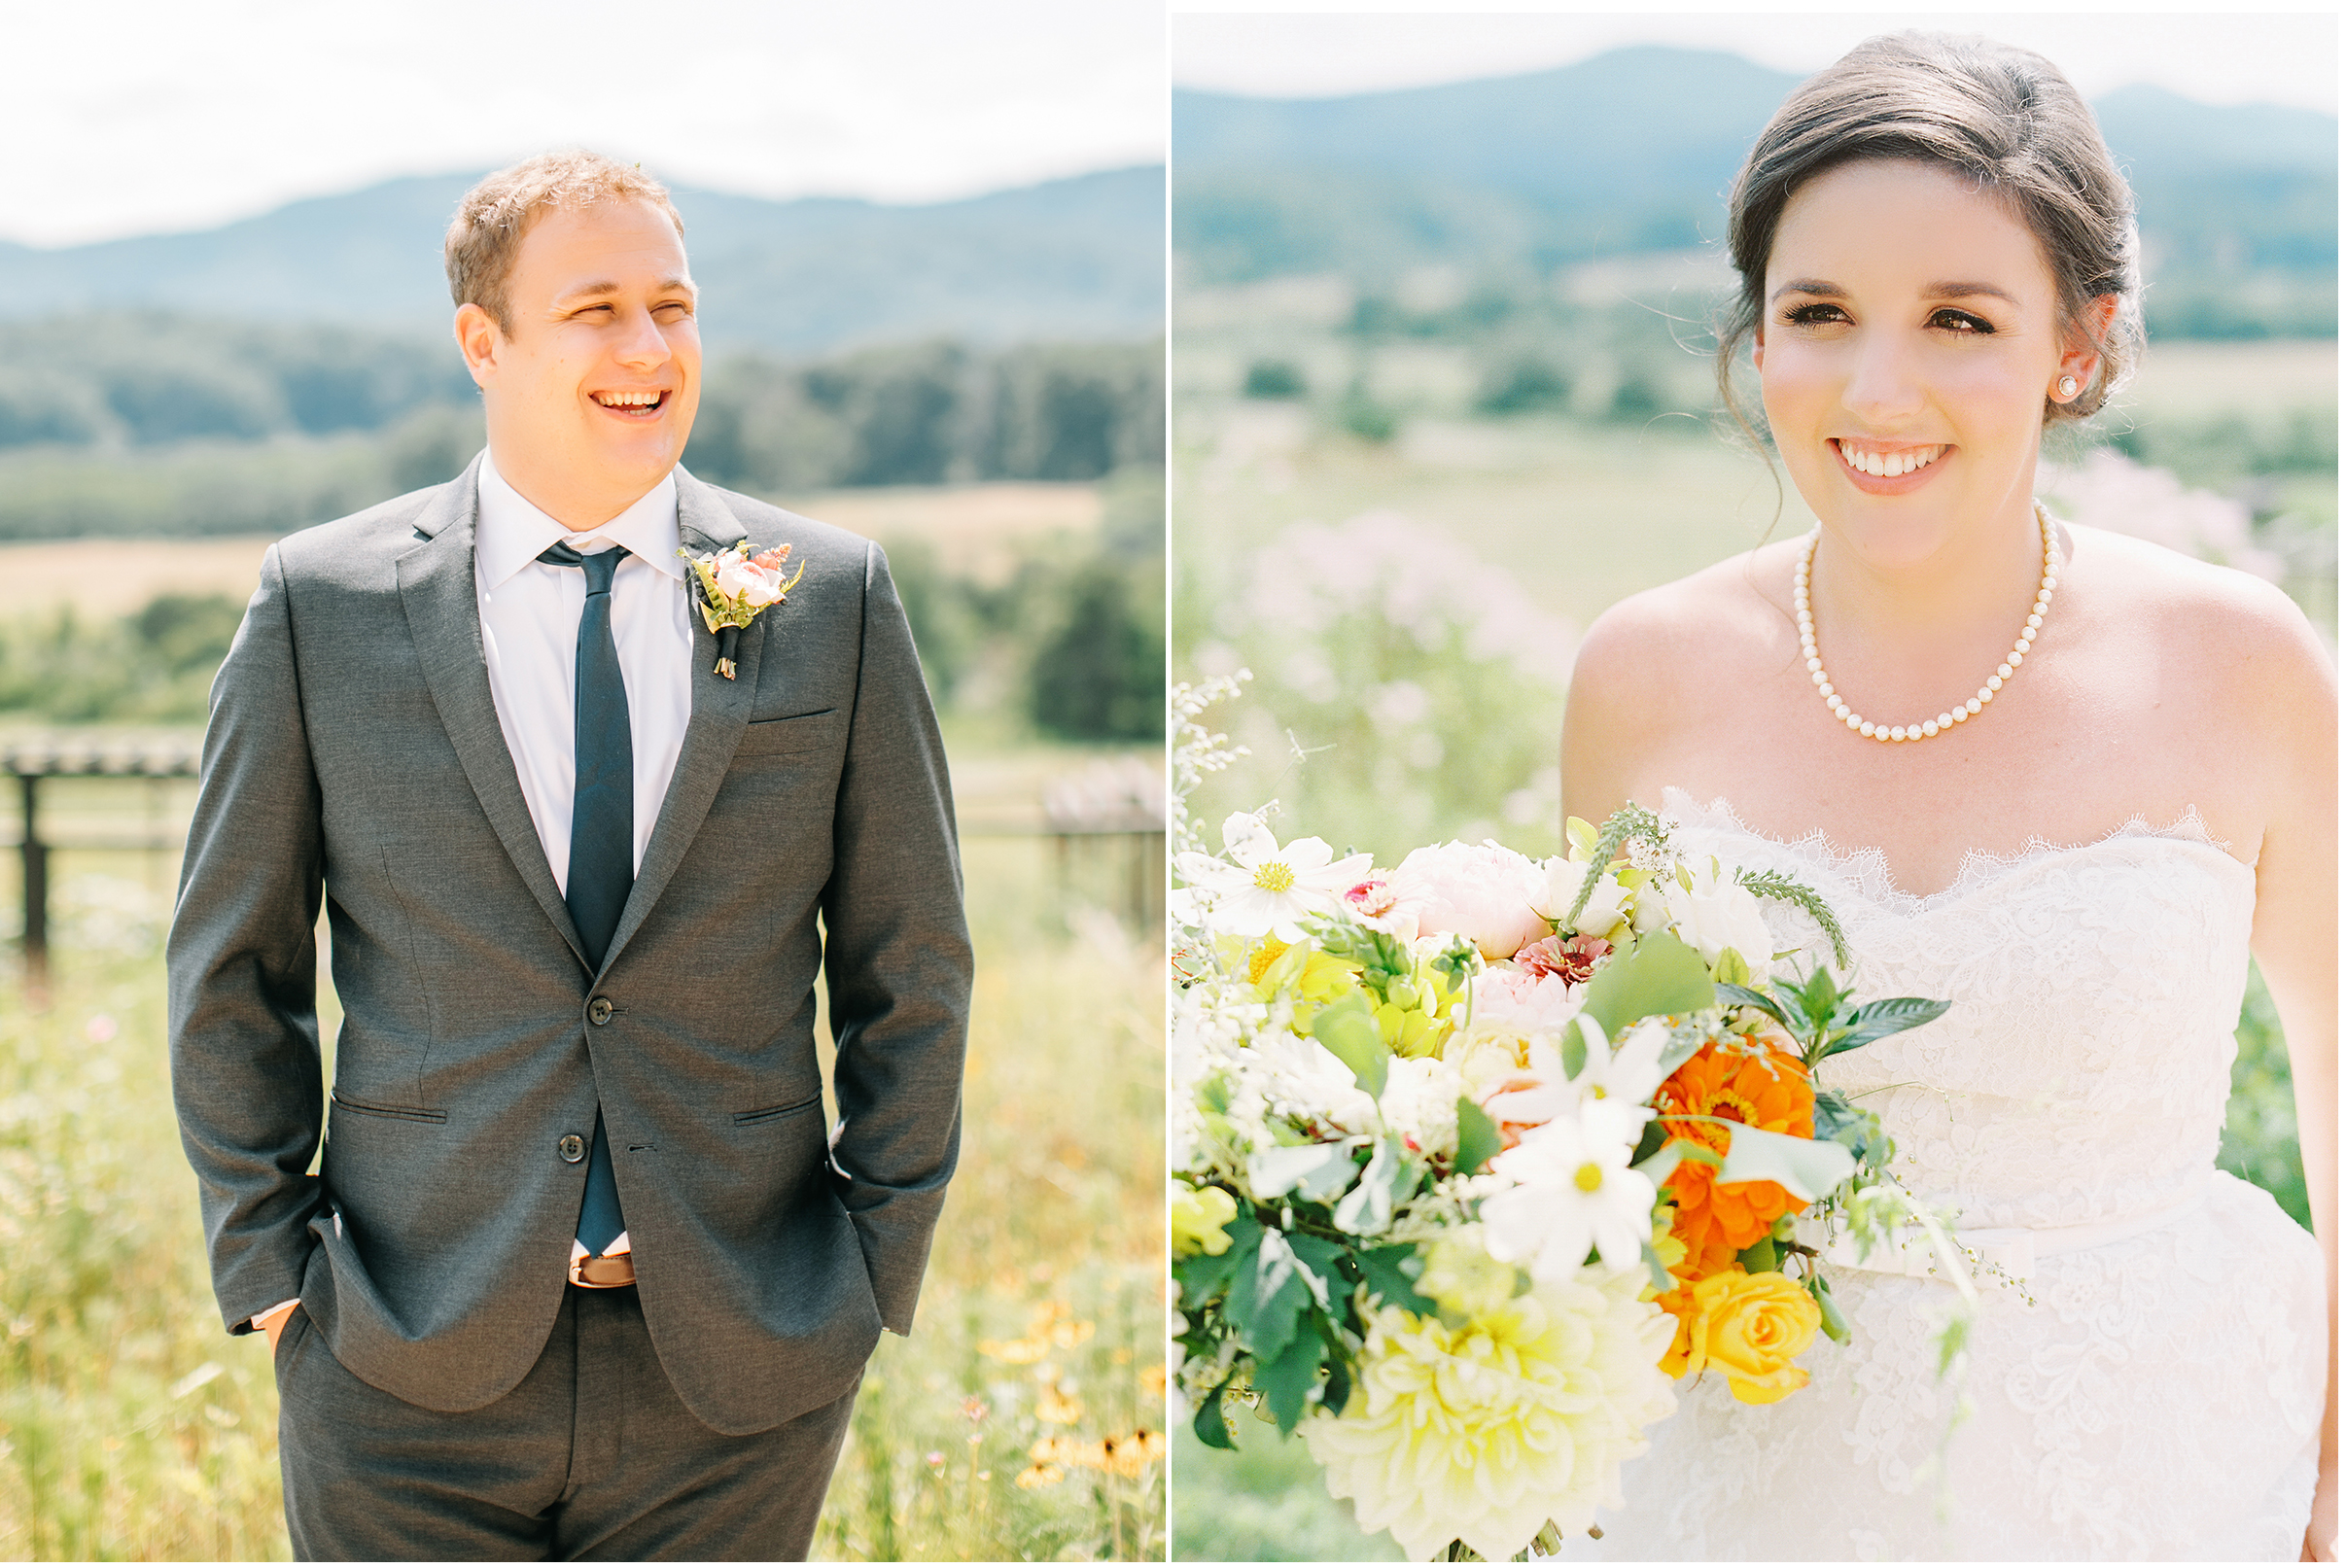 katie stoops photography-pippin hill-ashley baber weddings13.jpg